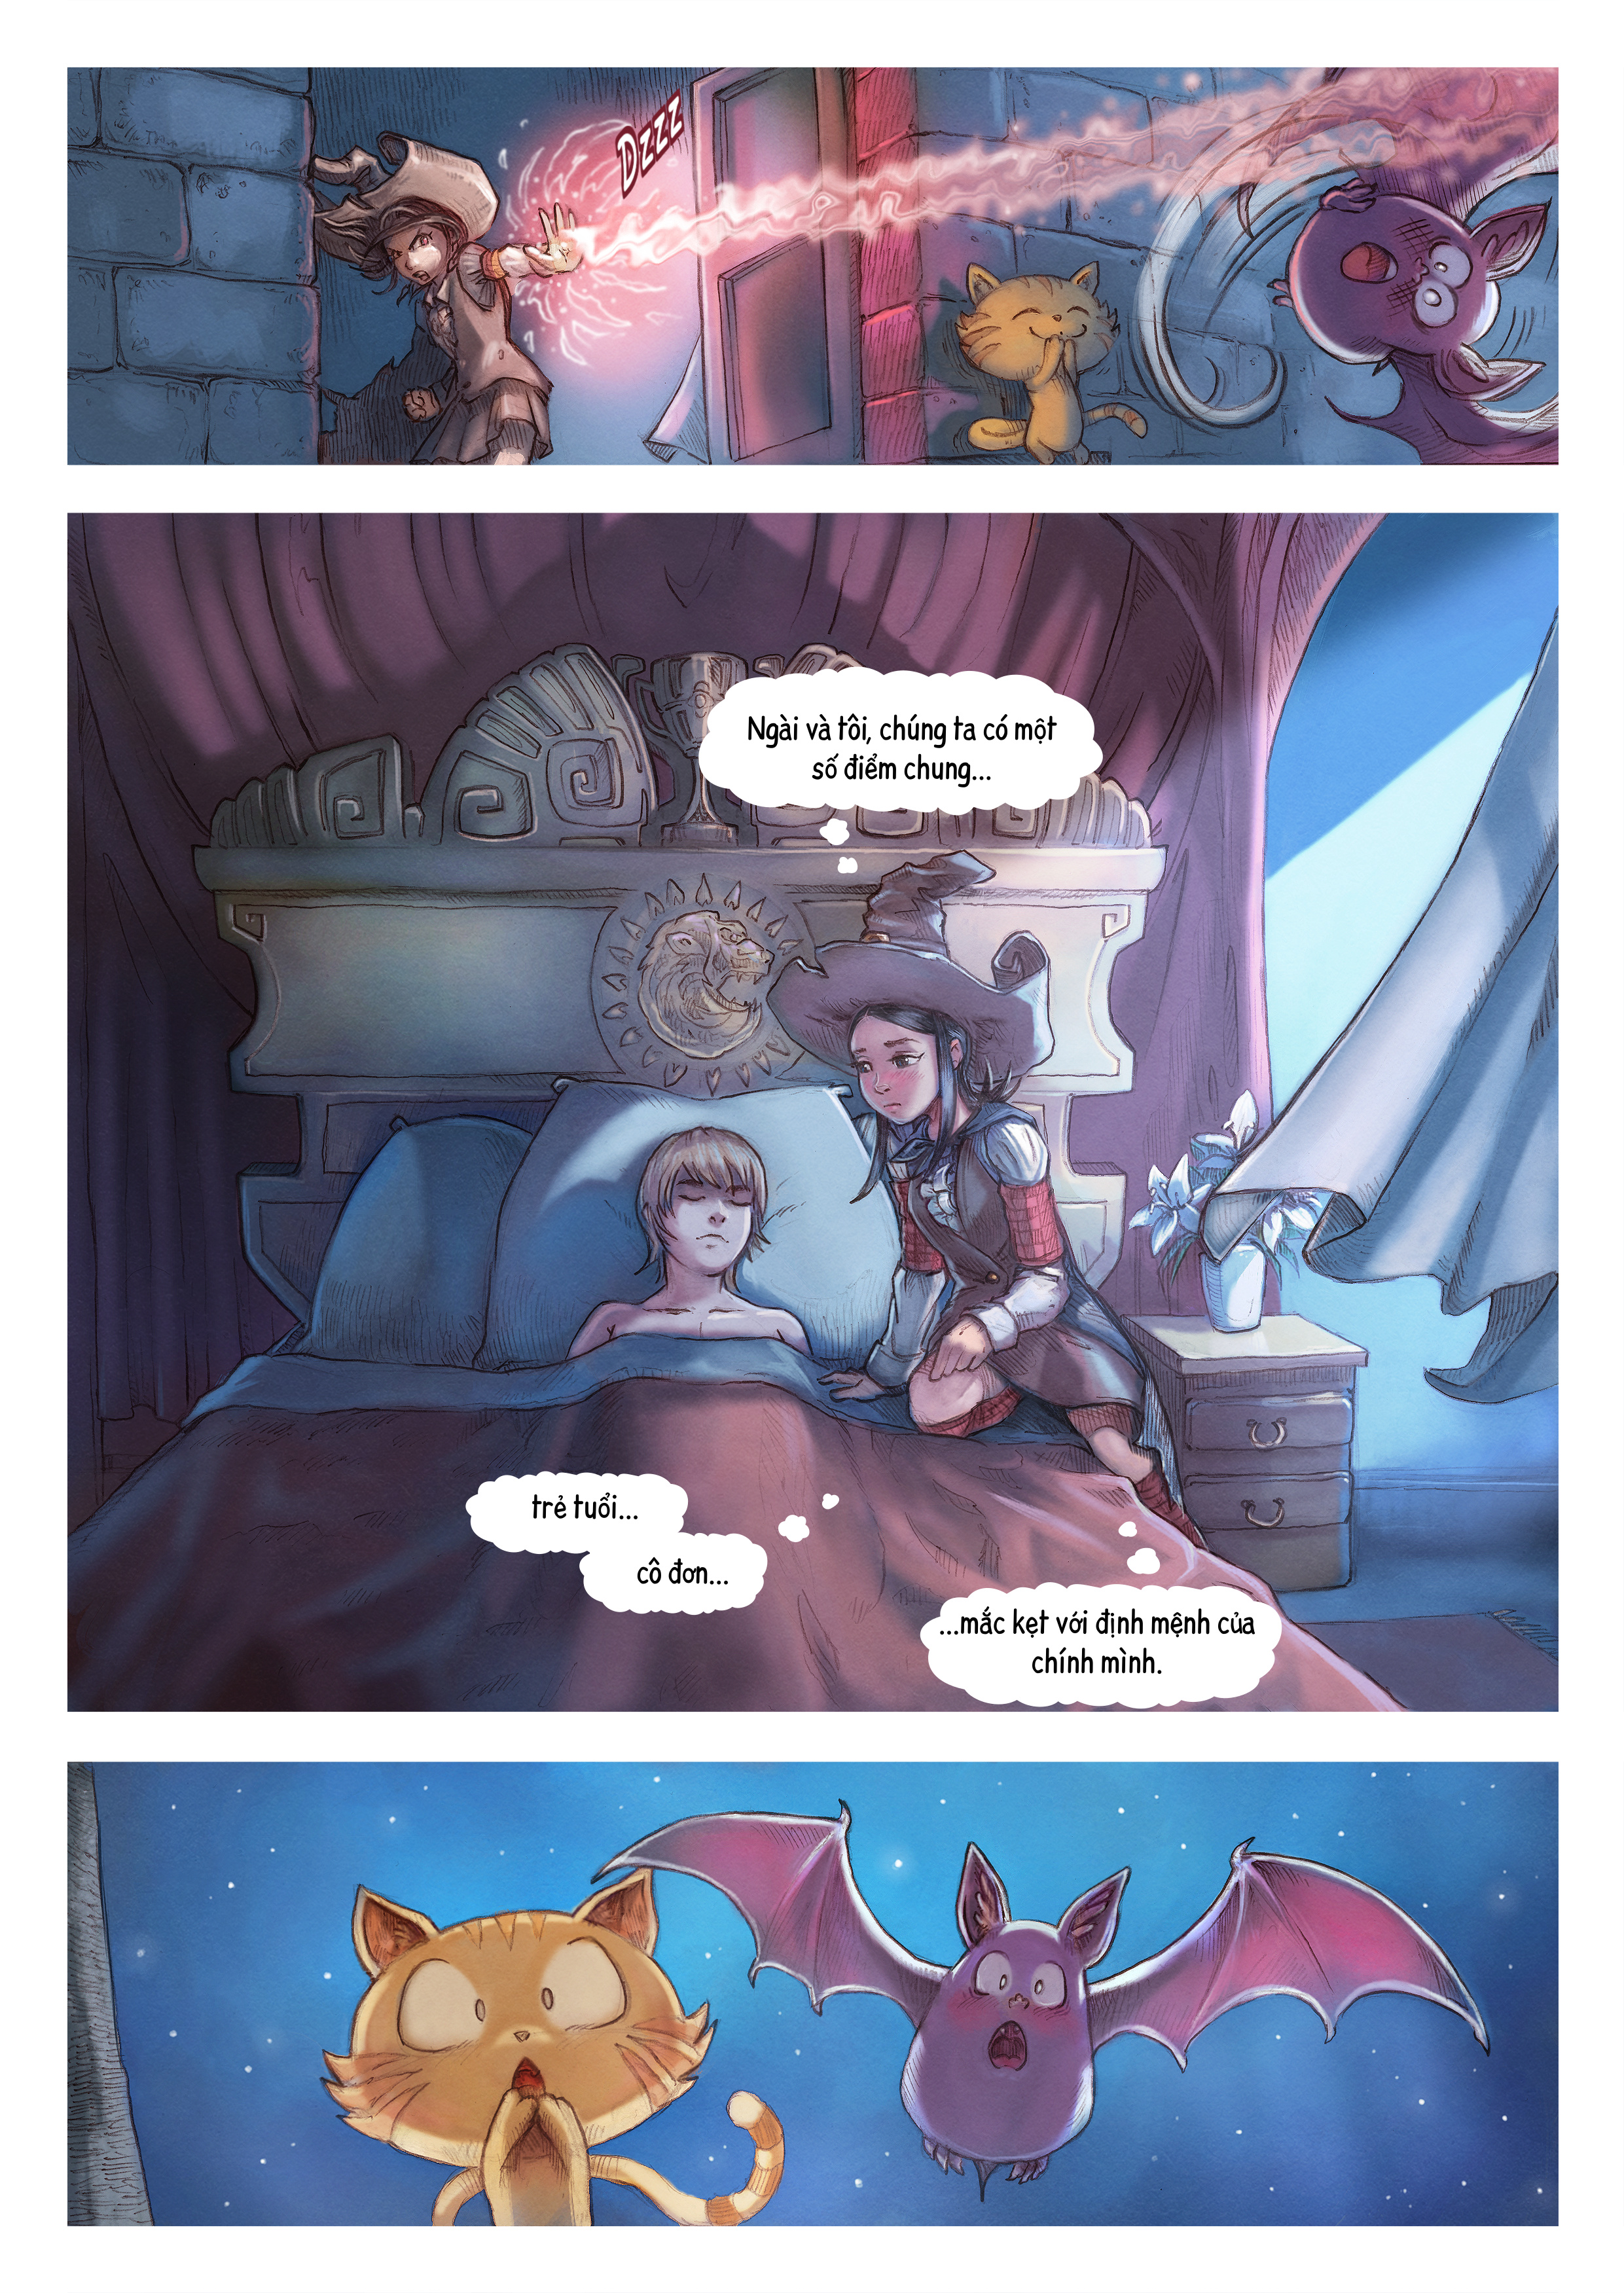 A webcomic page of Pepper&Carrot, Tập 11 [vi], trang 5